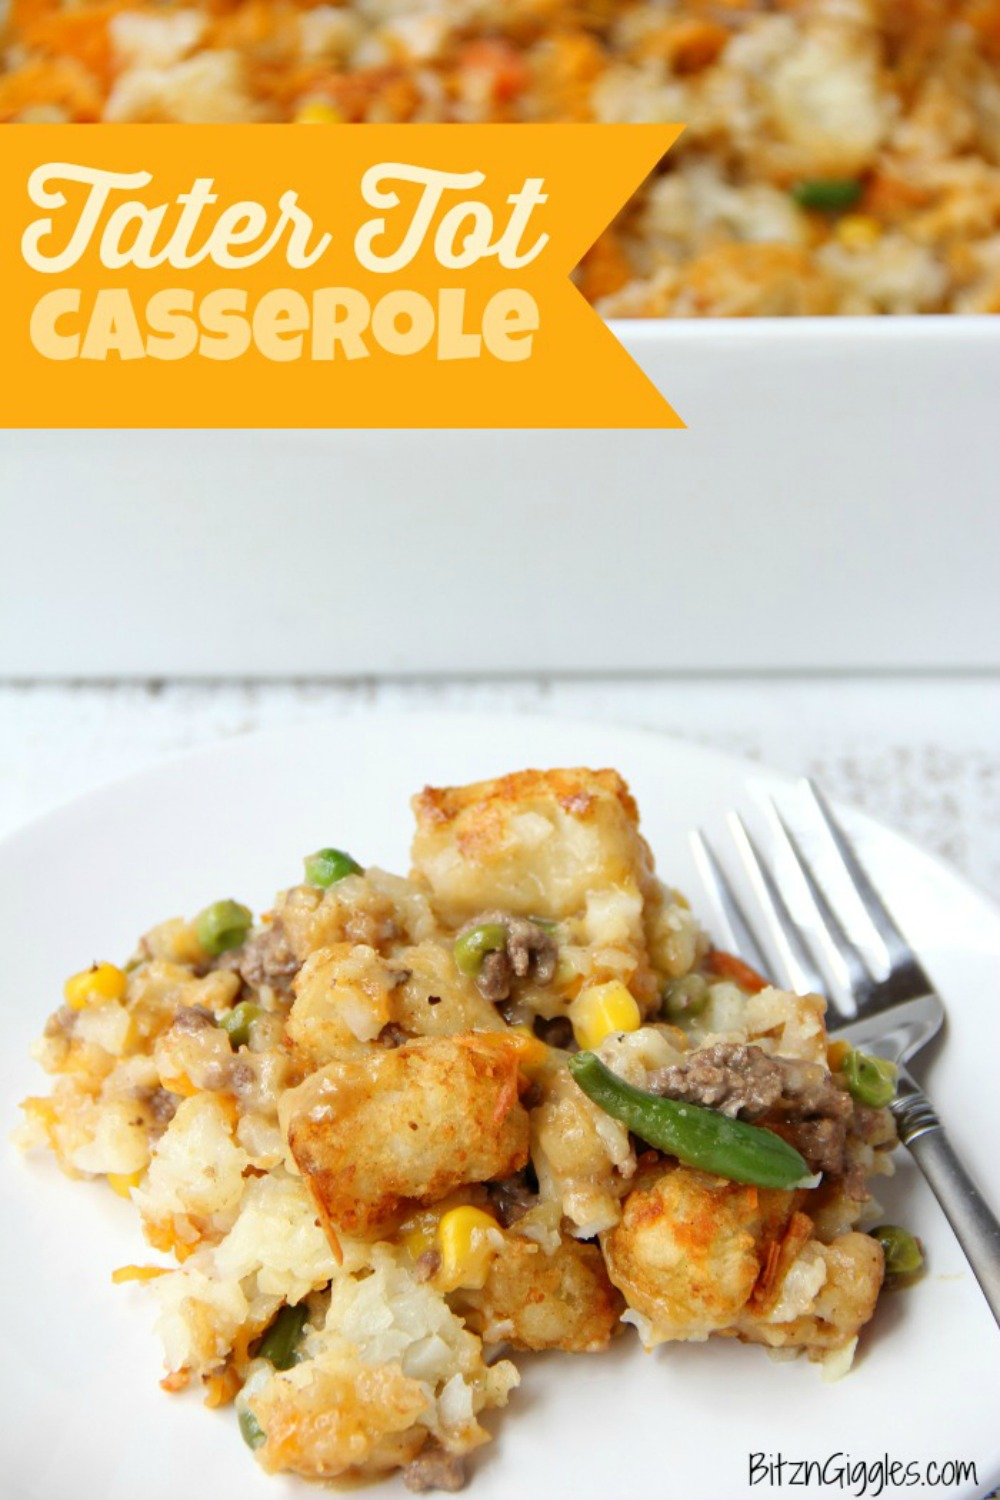 Tater Tot Casserole – A classic casserole that's both delicious and family-friendly! Comes together quickly with a few staple ingredients!